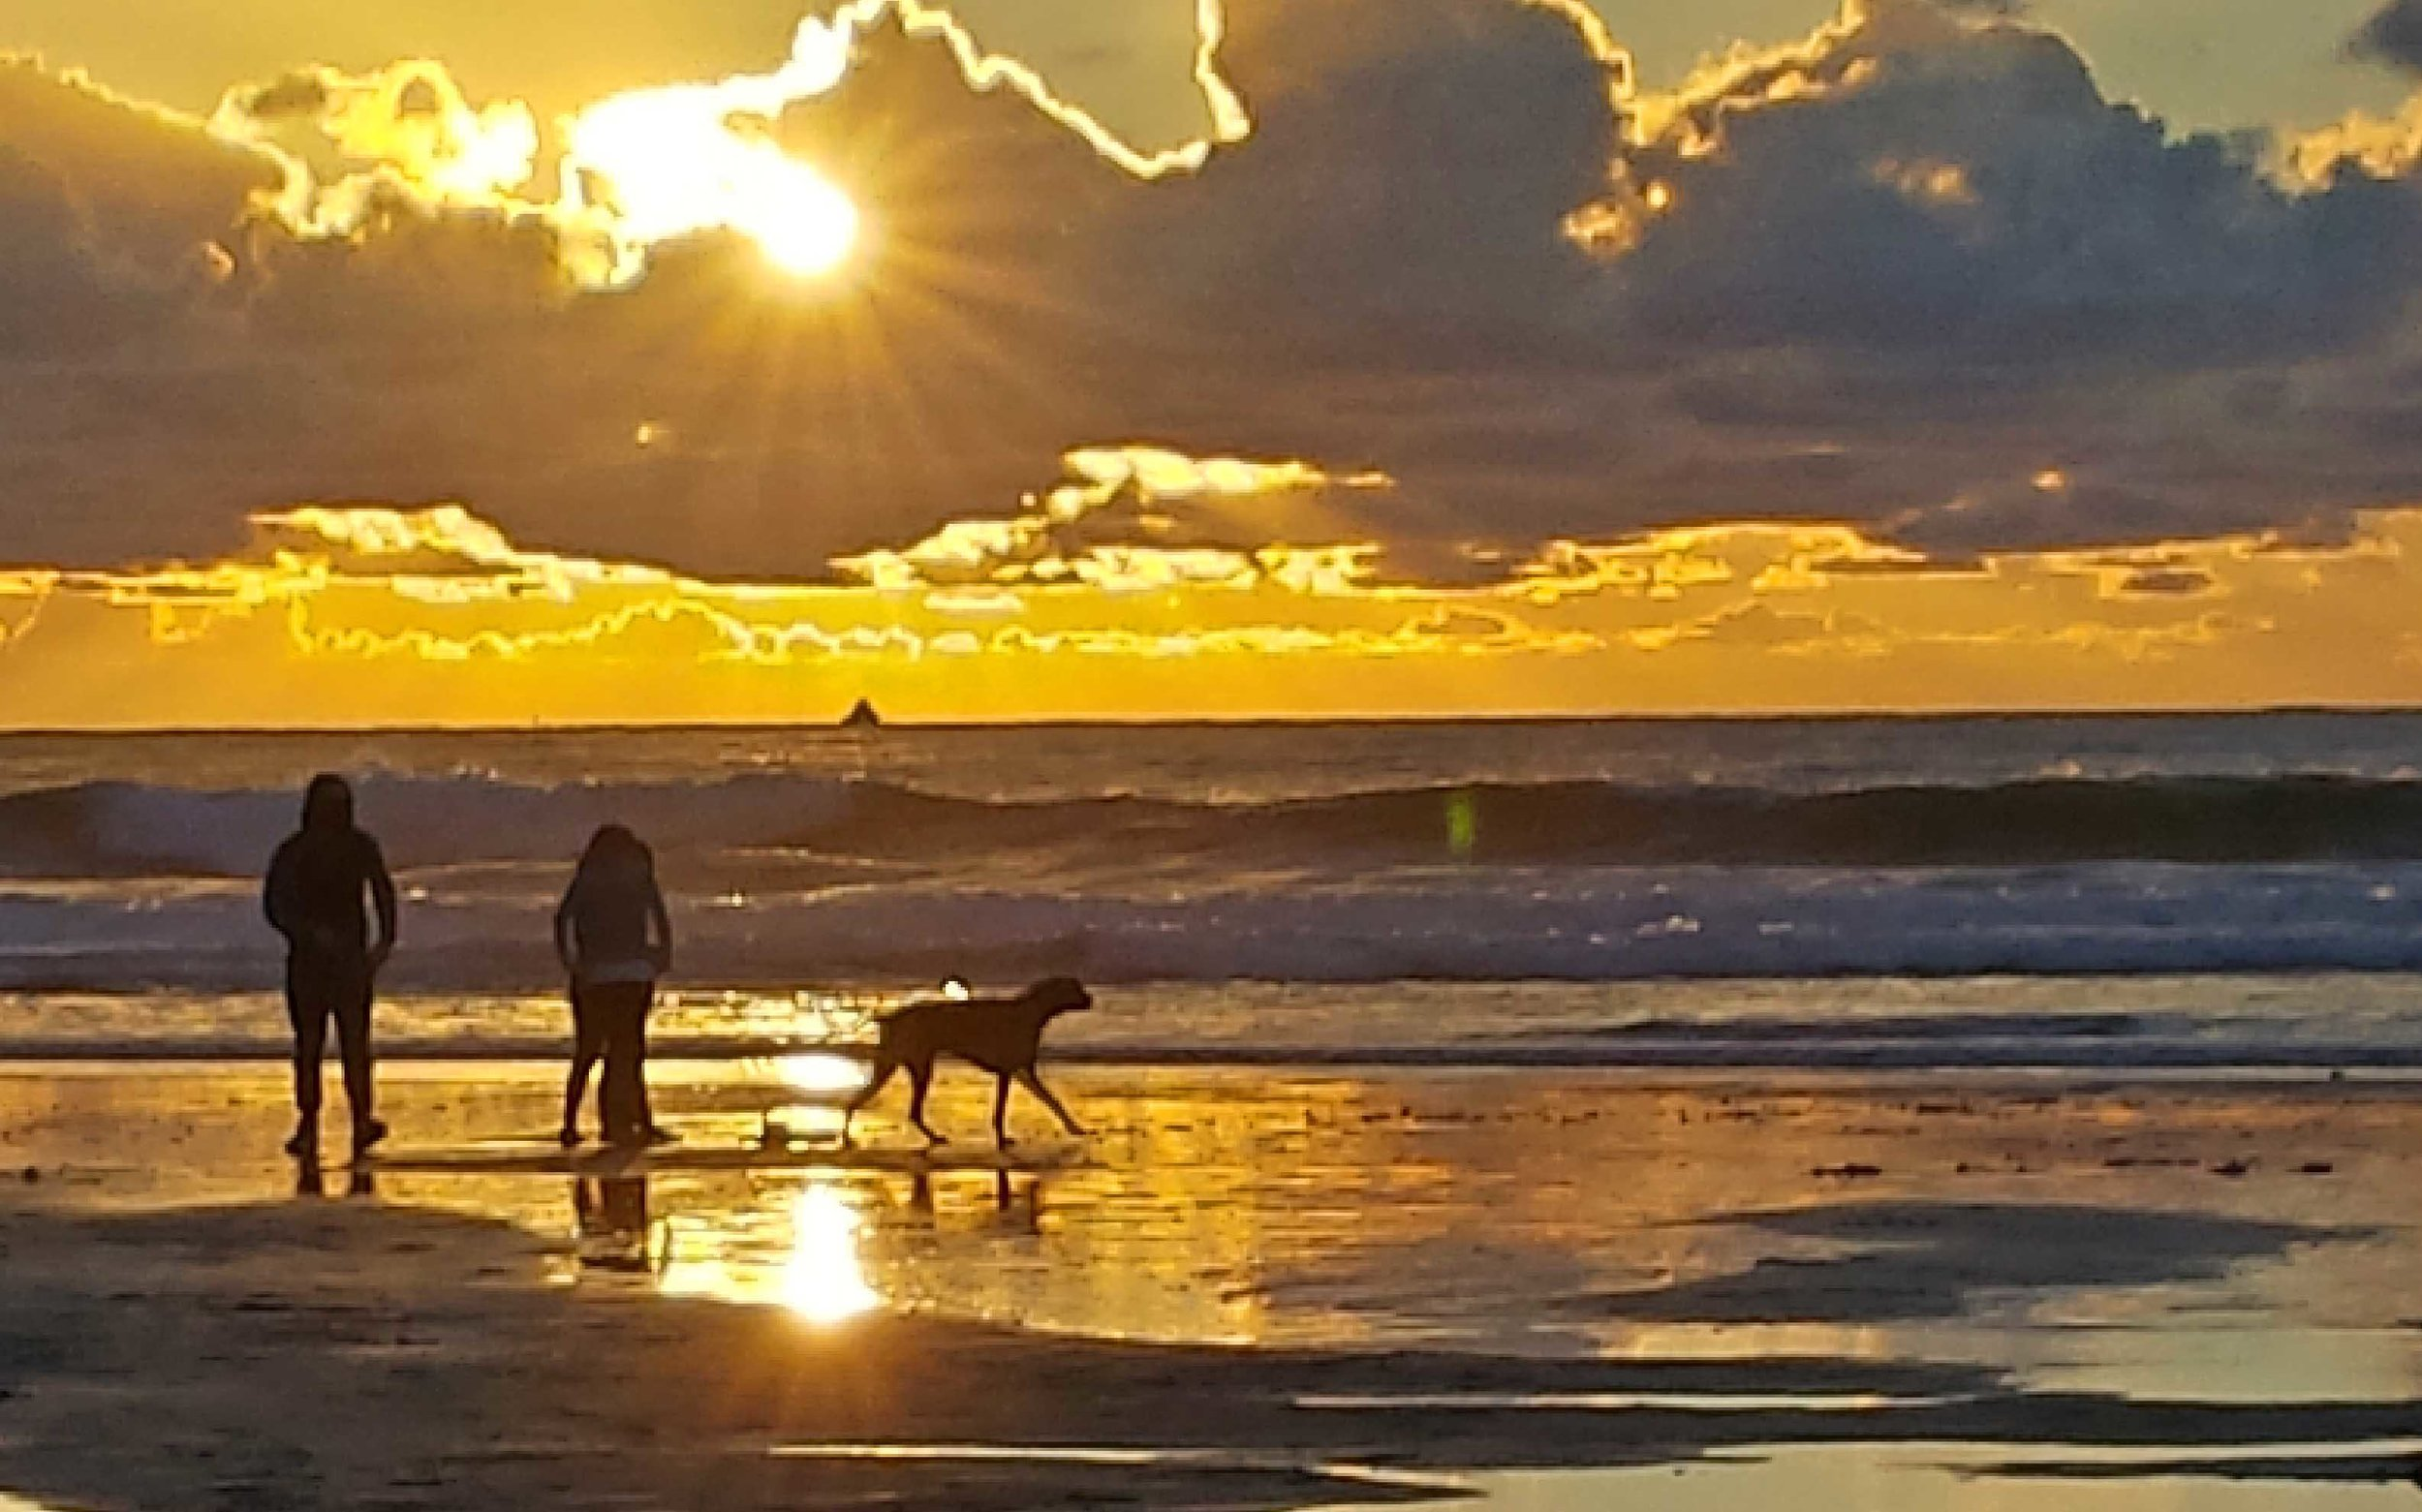 Dogs on vacation - every day at OB's Dog Beach.     Photo: (c) Barb Ayers, DogDiary.org